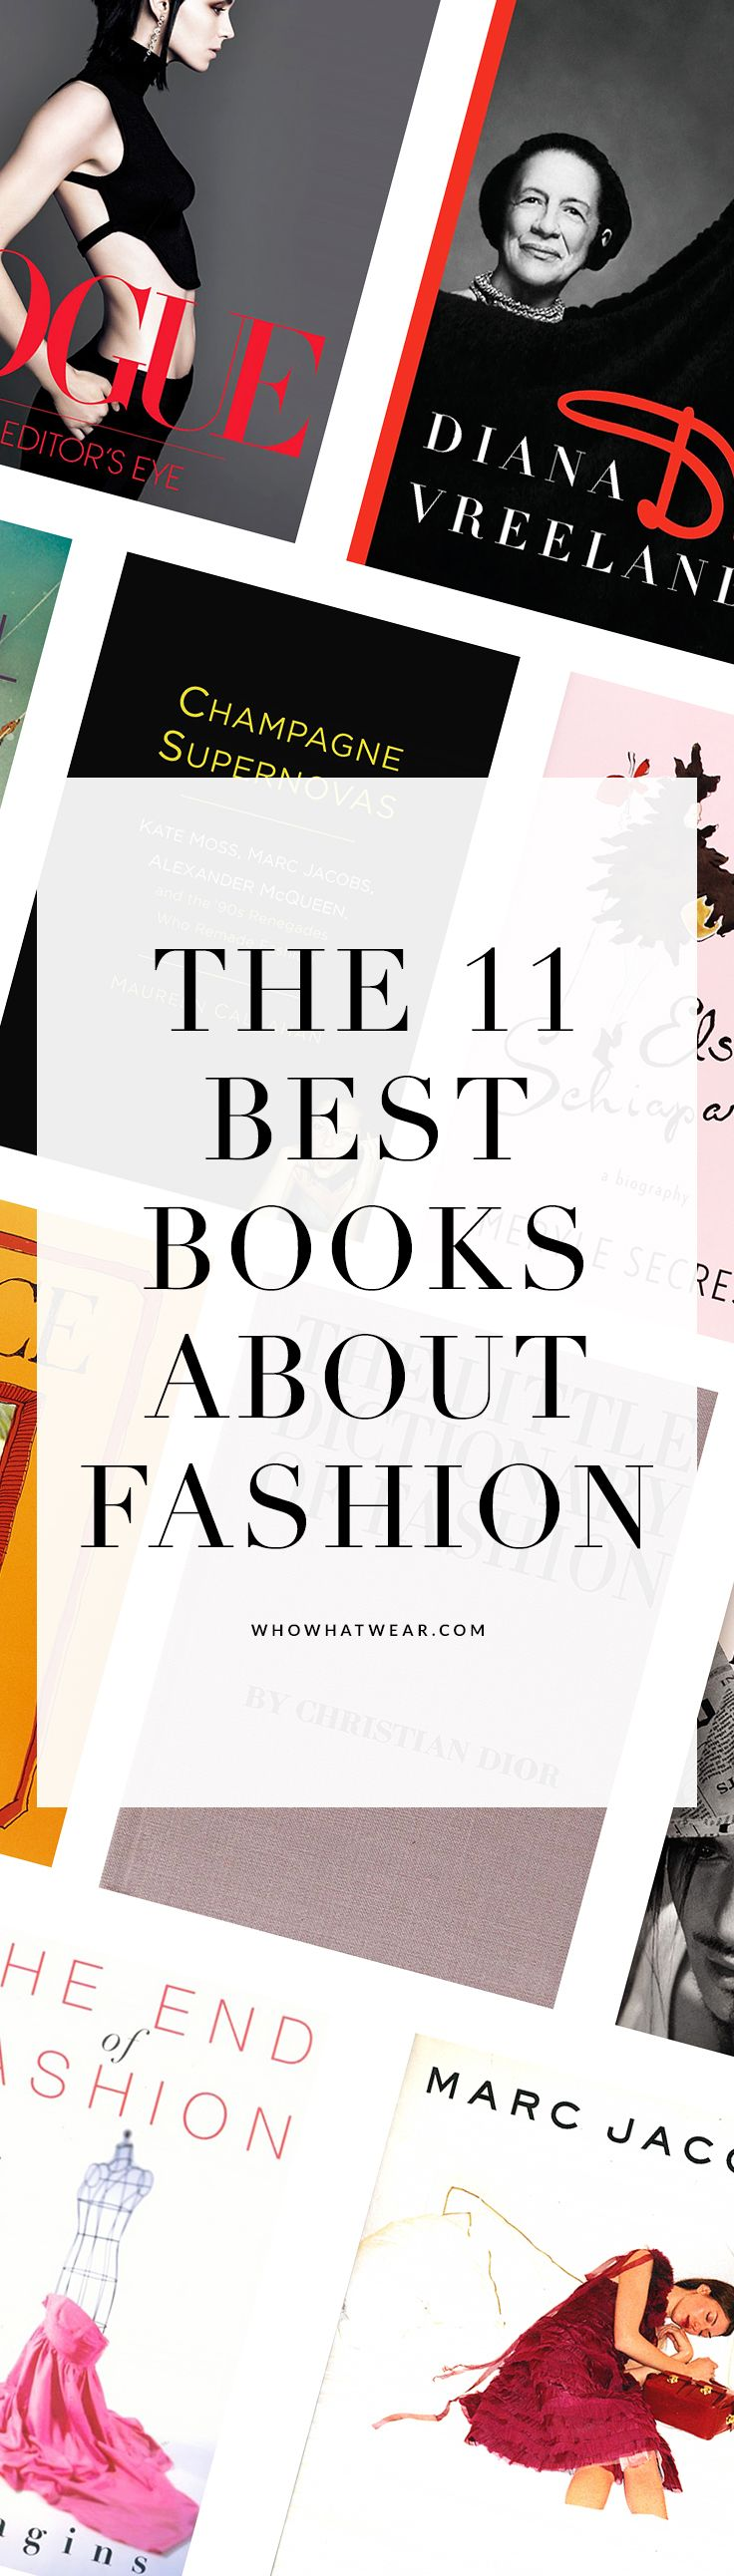 3 Lists of Best book about fashion design